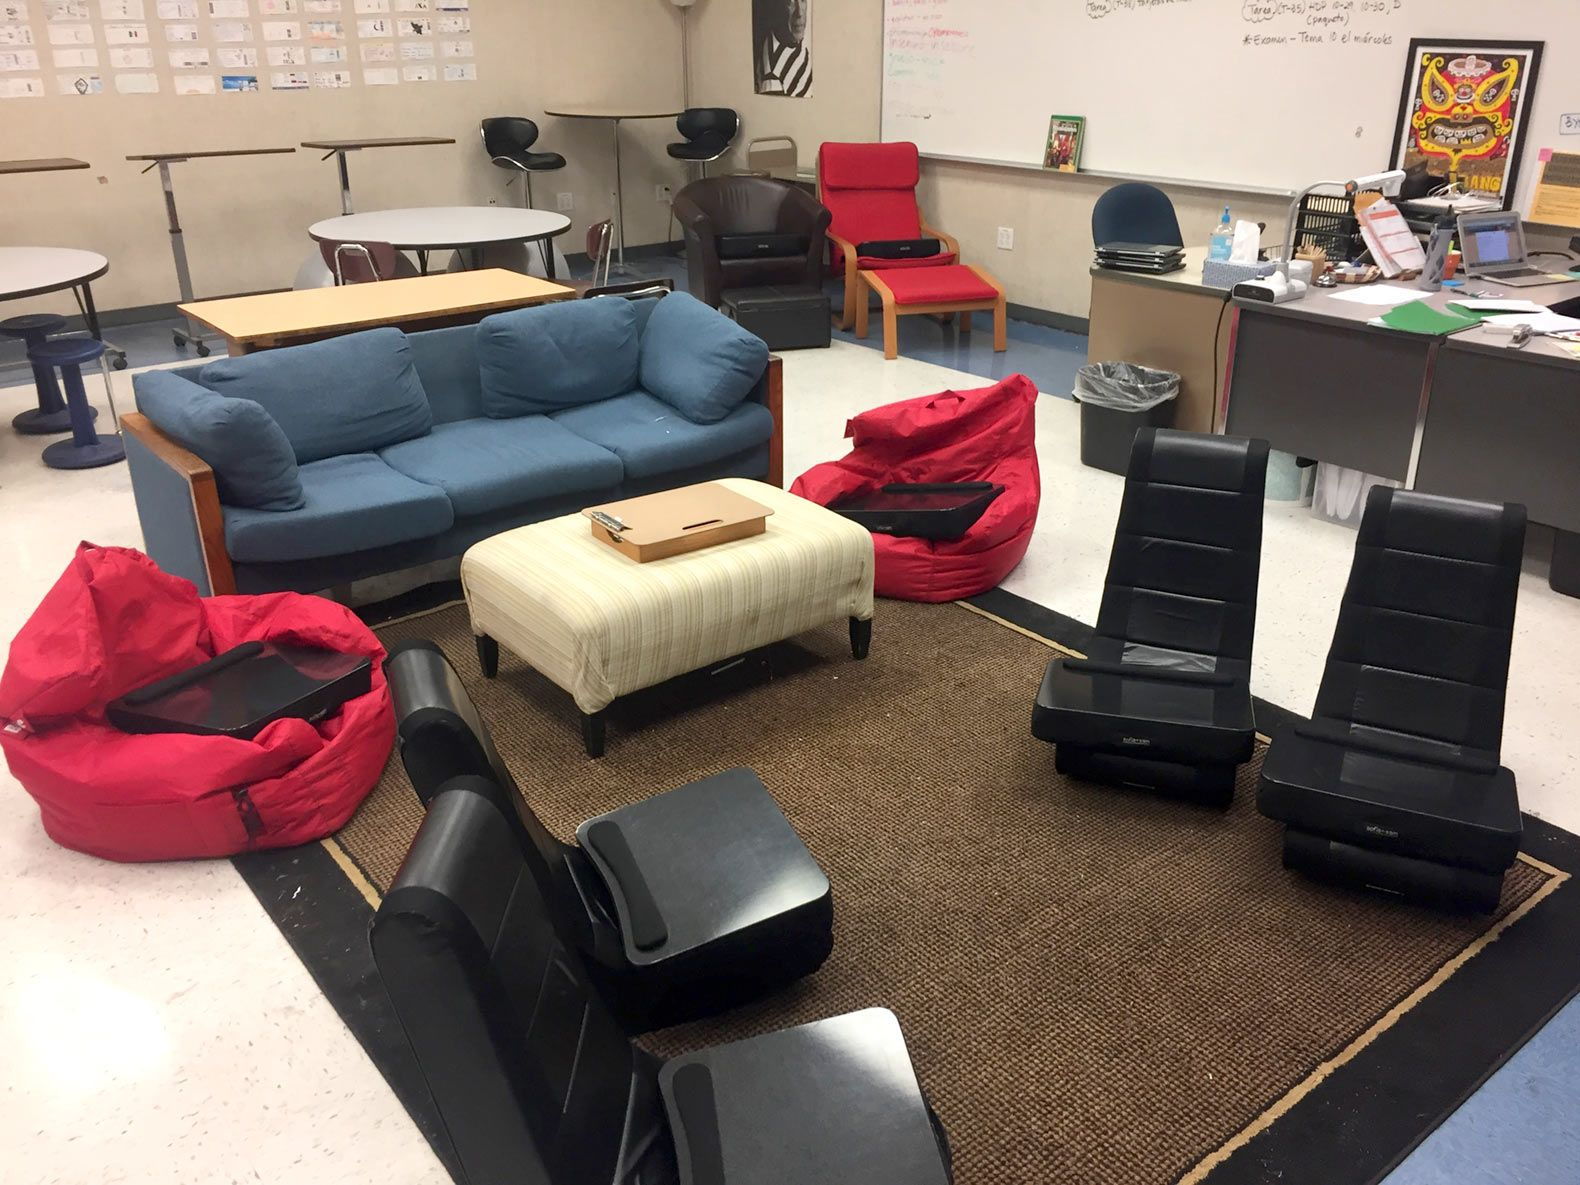 Nichole Murray switched from traditional desk seating to flexible seating in the middle of last year. She now mixes traditional desks with beanbags, a sofa, gaming chairs, armchairs, and stools.